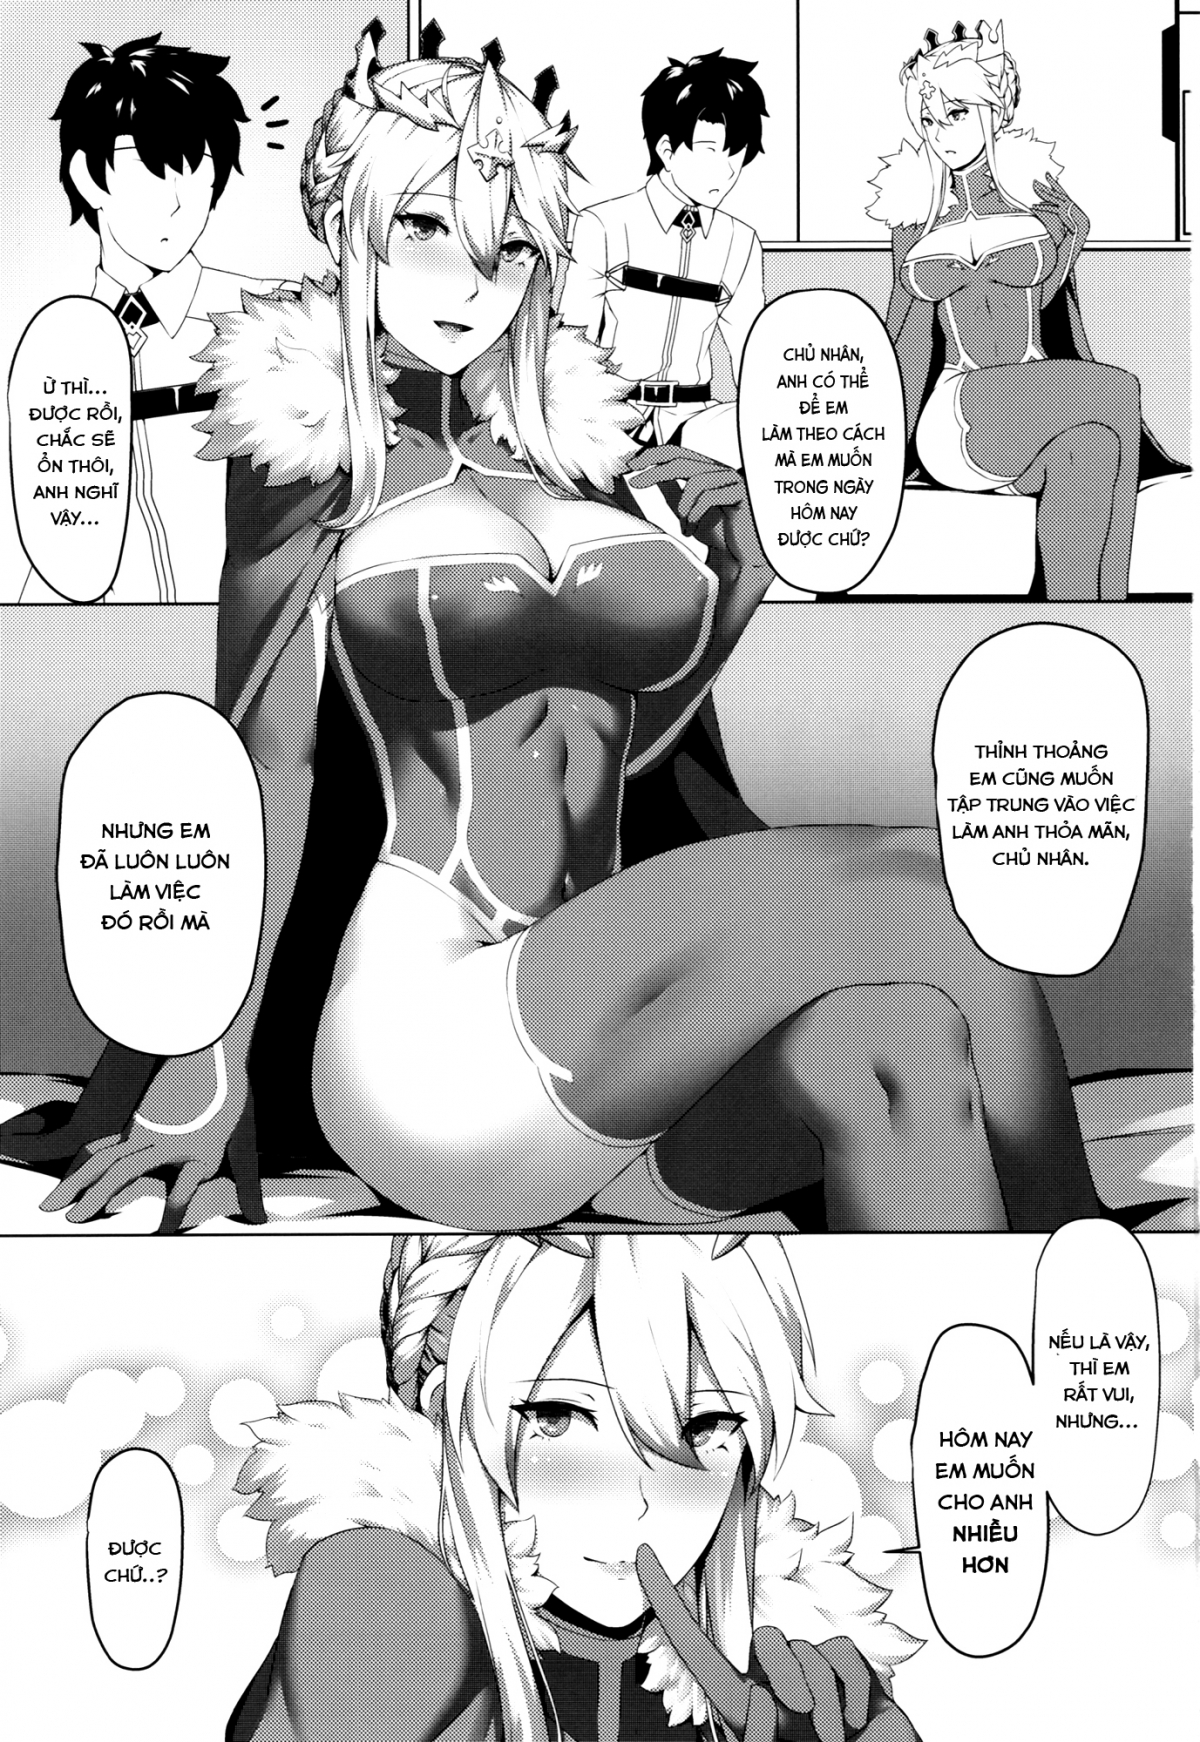 HentaiVN.net - Ảnh 2 - How do you like that! (Fate/Grand Order) - Oneshot